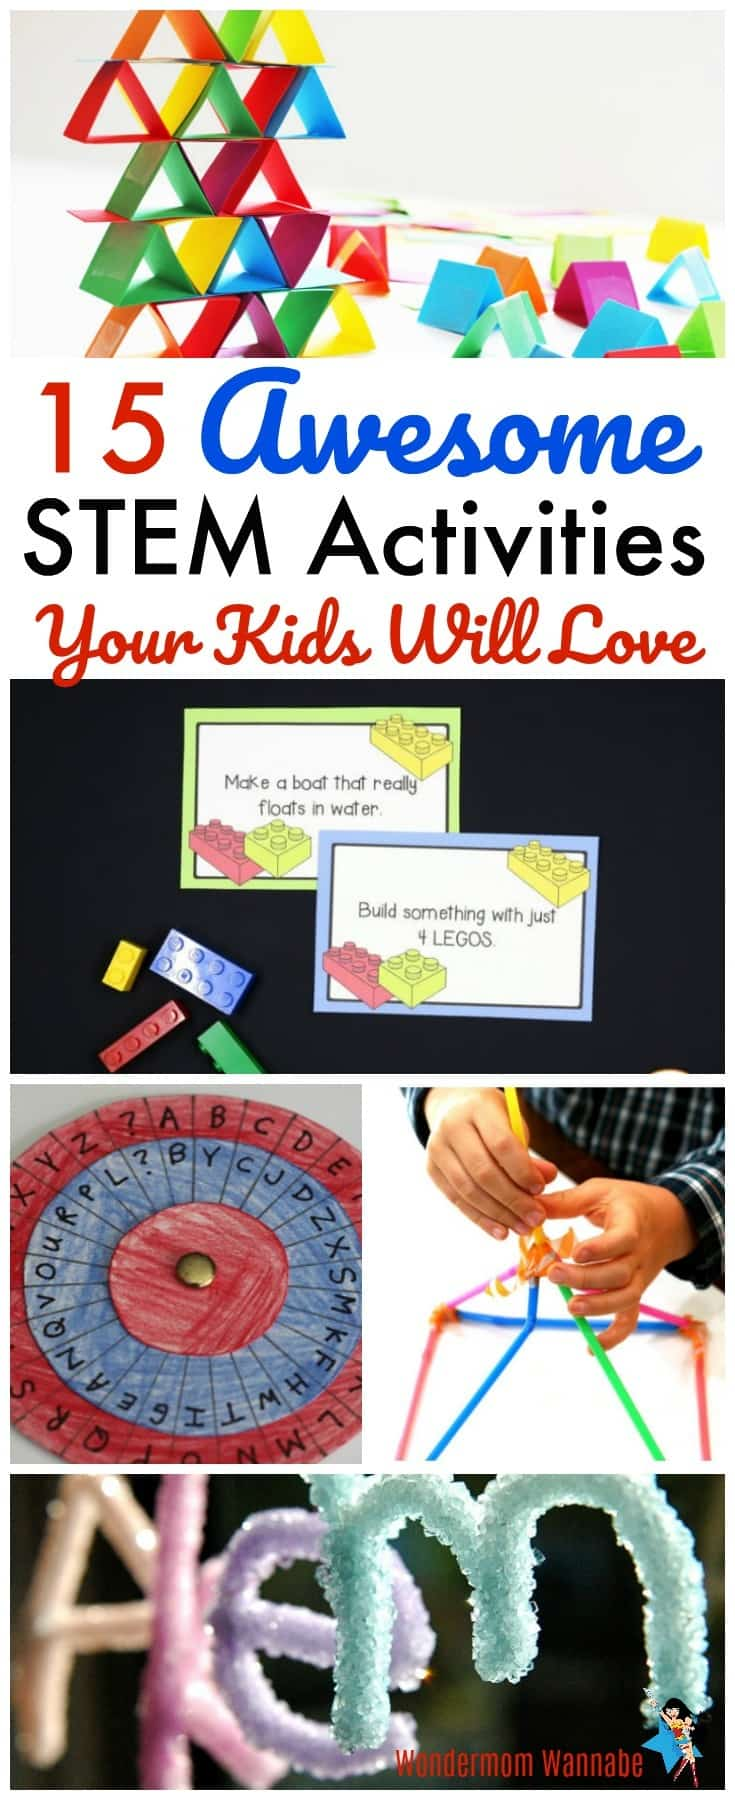 Your children will love these totally fun educational activities for kids. Even better, you probably have everything you need to do them right at home.